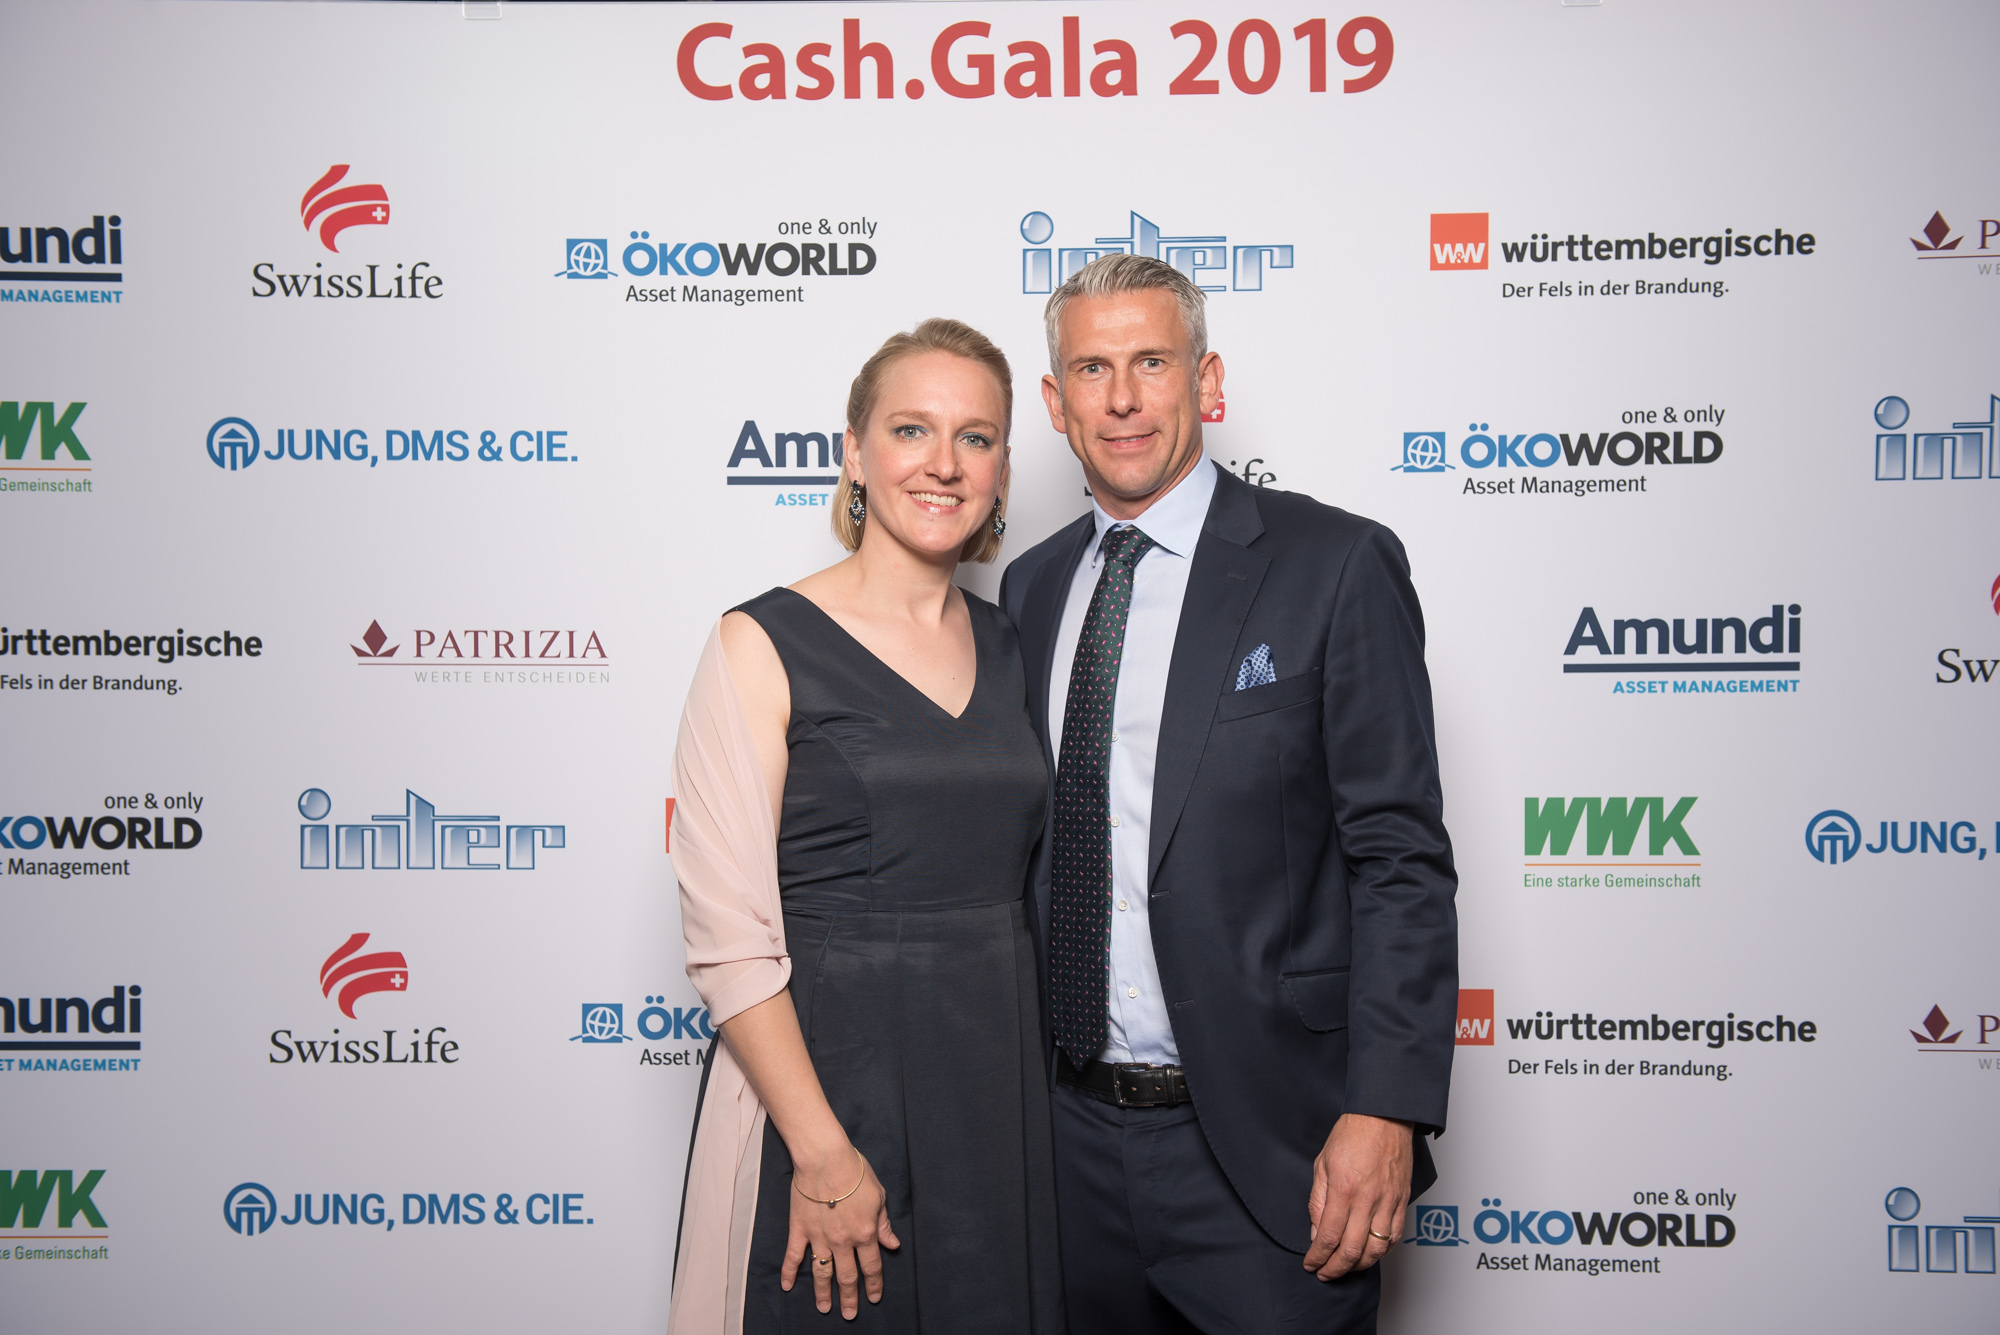 CashGala 2019 0058 AM DSC7115 in Cash.Gala 2019